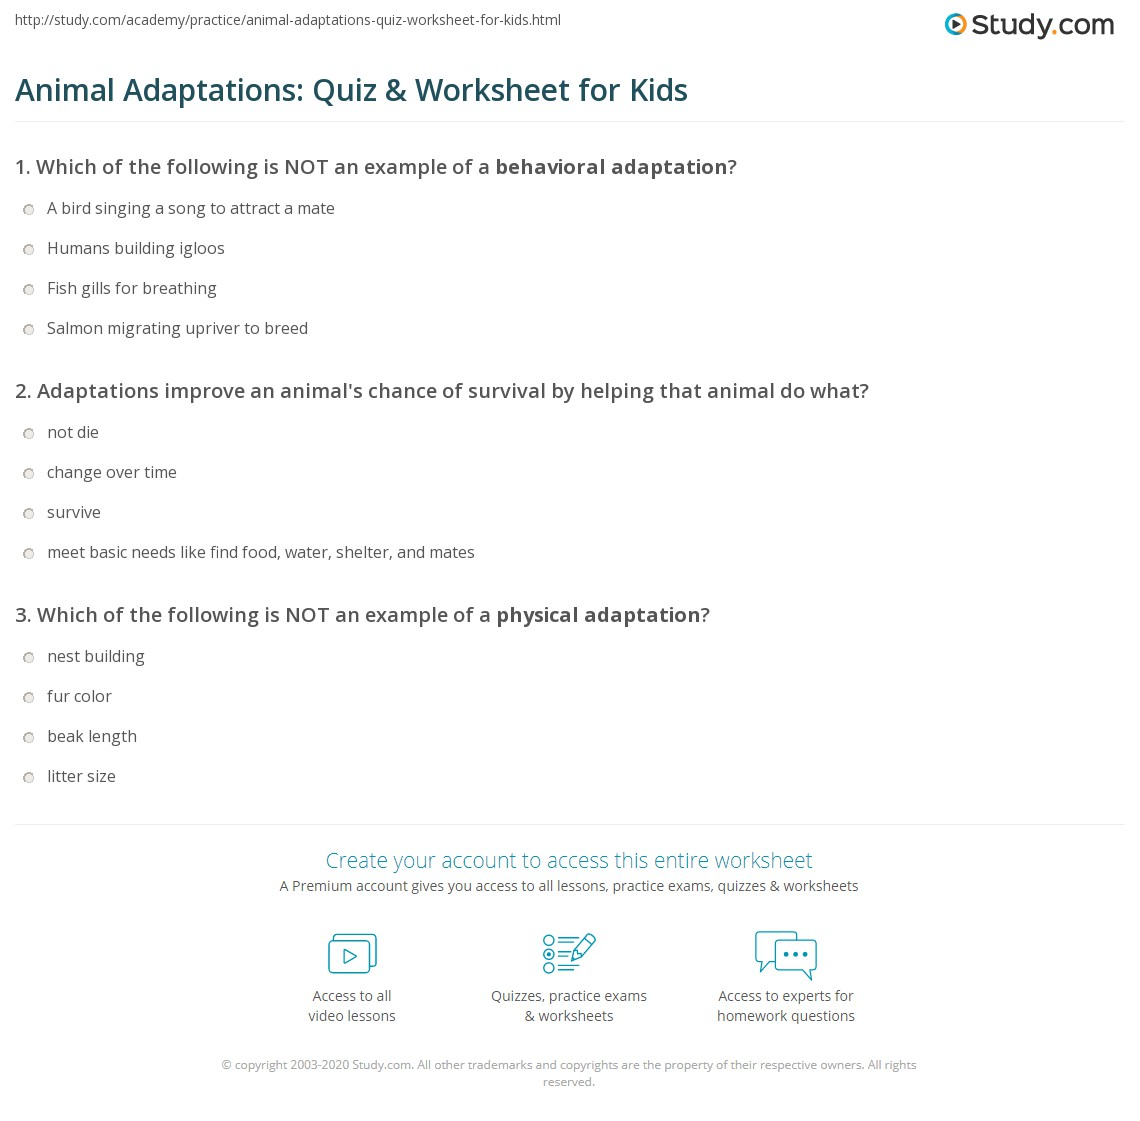 Animal Adaptations: Quiz & Worksheet for Kids | Study.com